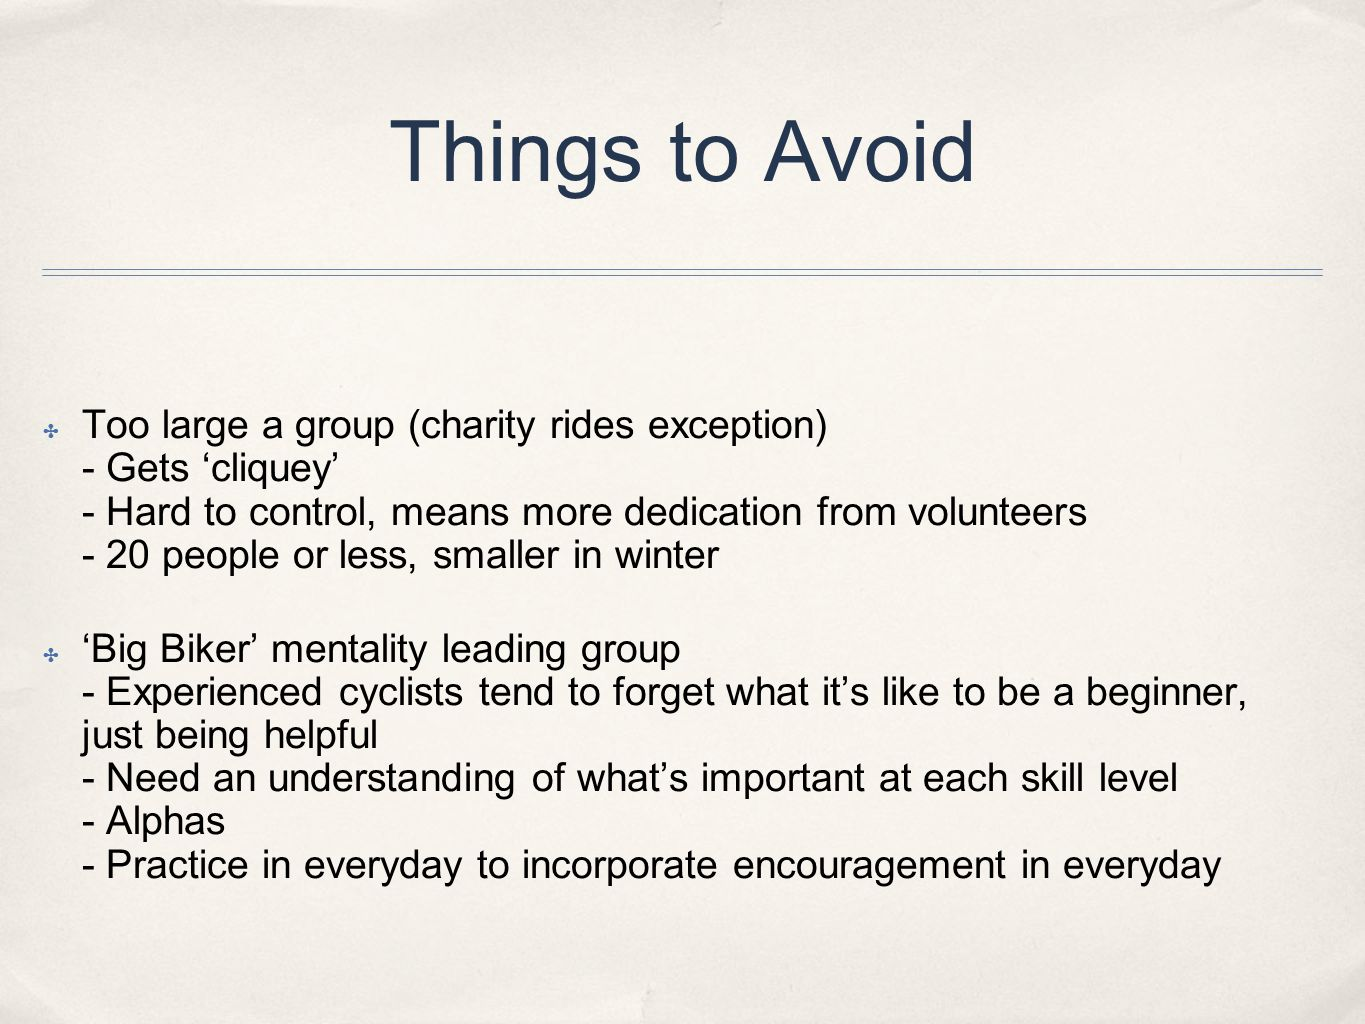 Things to Avoid ✤ Too large a group (charity rides exception) - Gets 'cliquey' - Hard to control, means more dedication from volunteers - 20 people or less, smaller in winter ✤ 'Big Biker' mentality leading group - Experienced cyclists tend to forget what it's like to be a beginner, just being helpful - Need an understanding of what's important at each skill level - Alphas - Practice in everyday to incorporate encouragement in everyday